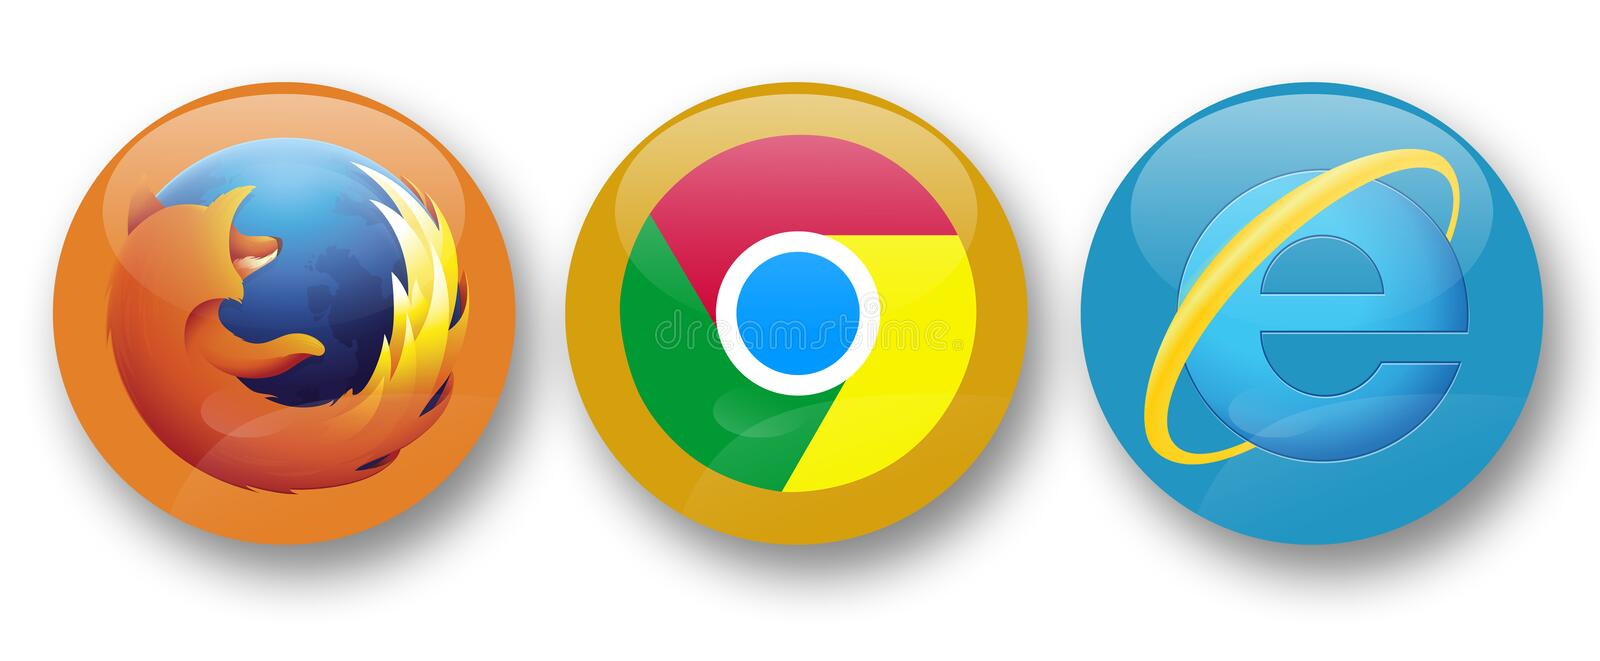 Web browsers. Firefox, chrome and internet explorer web browsers stock illustration